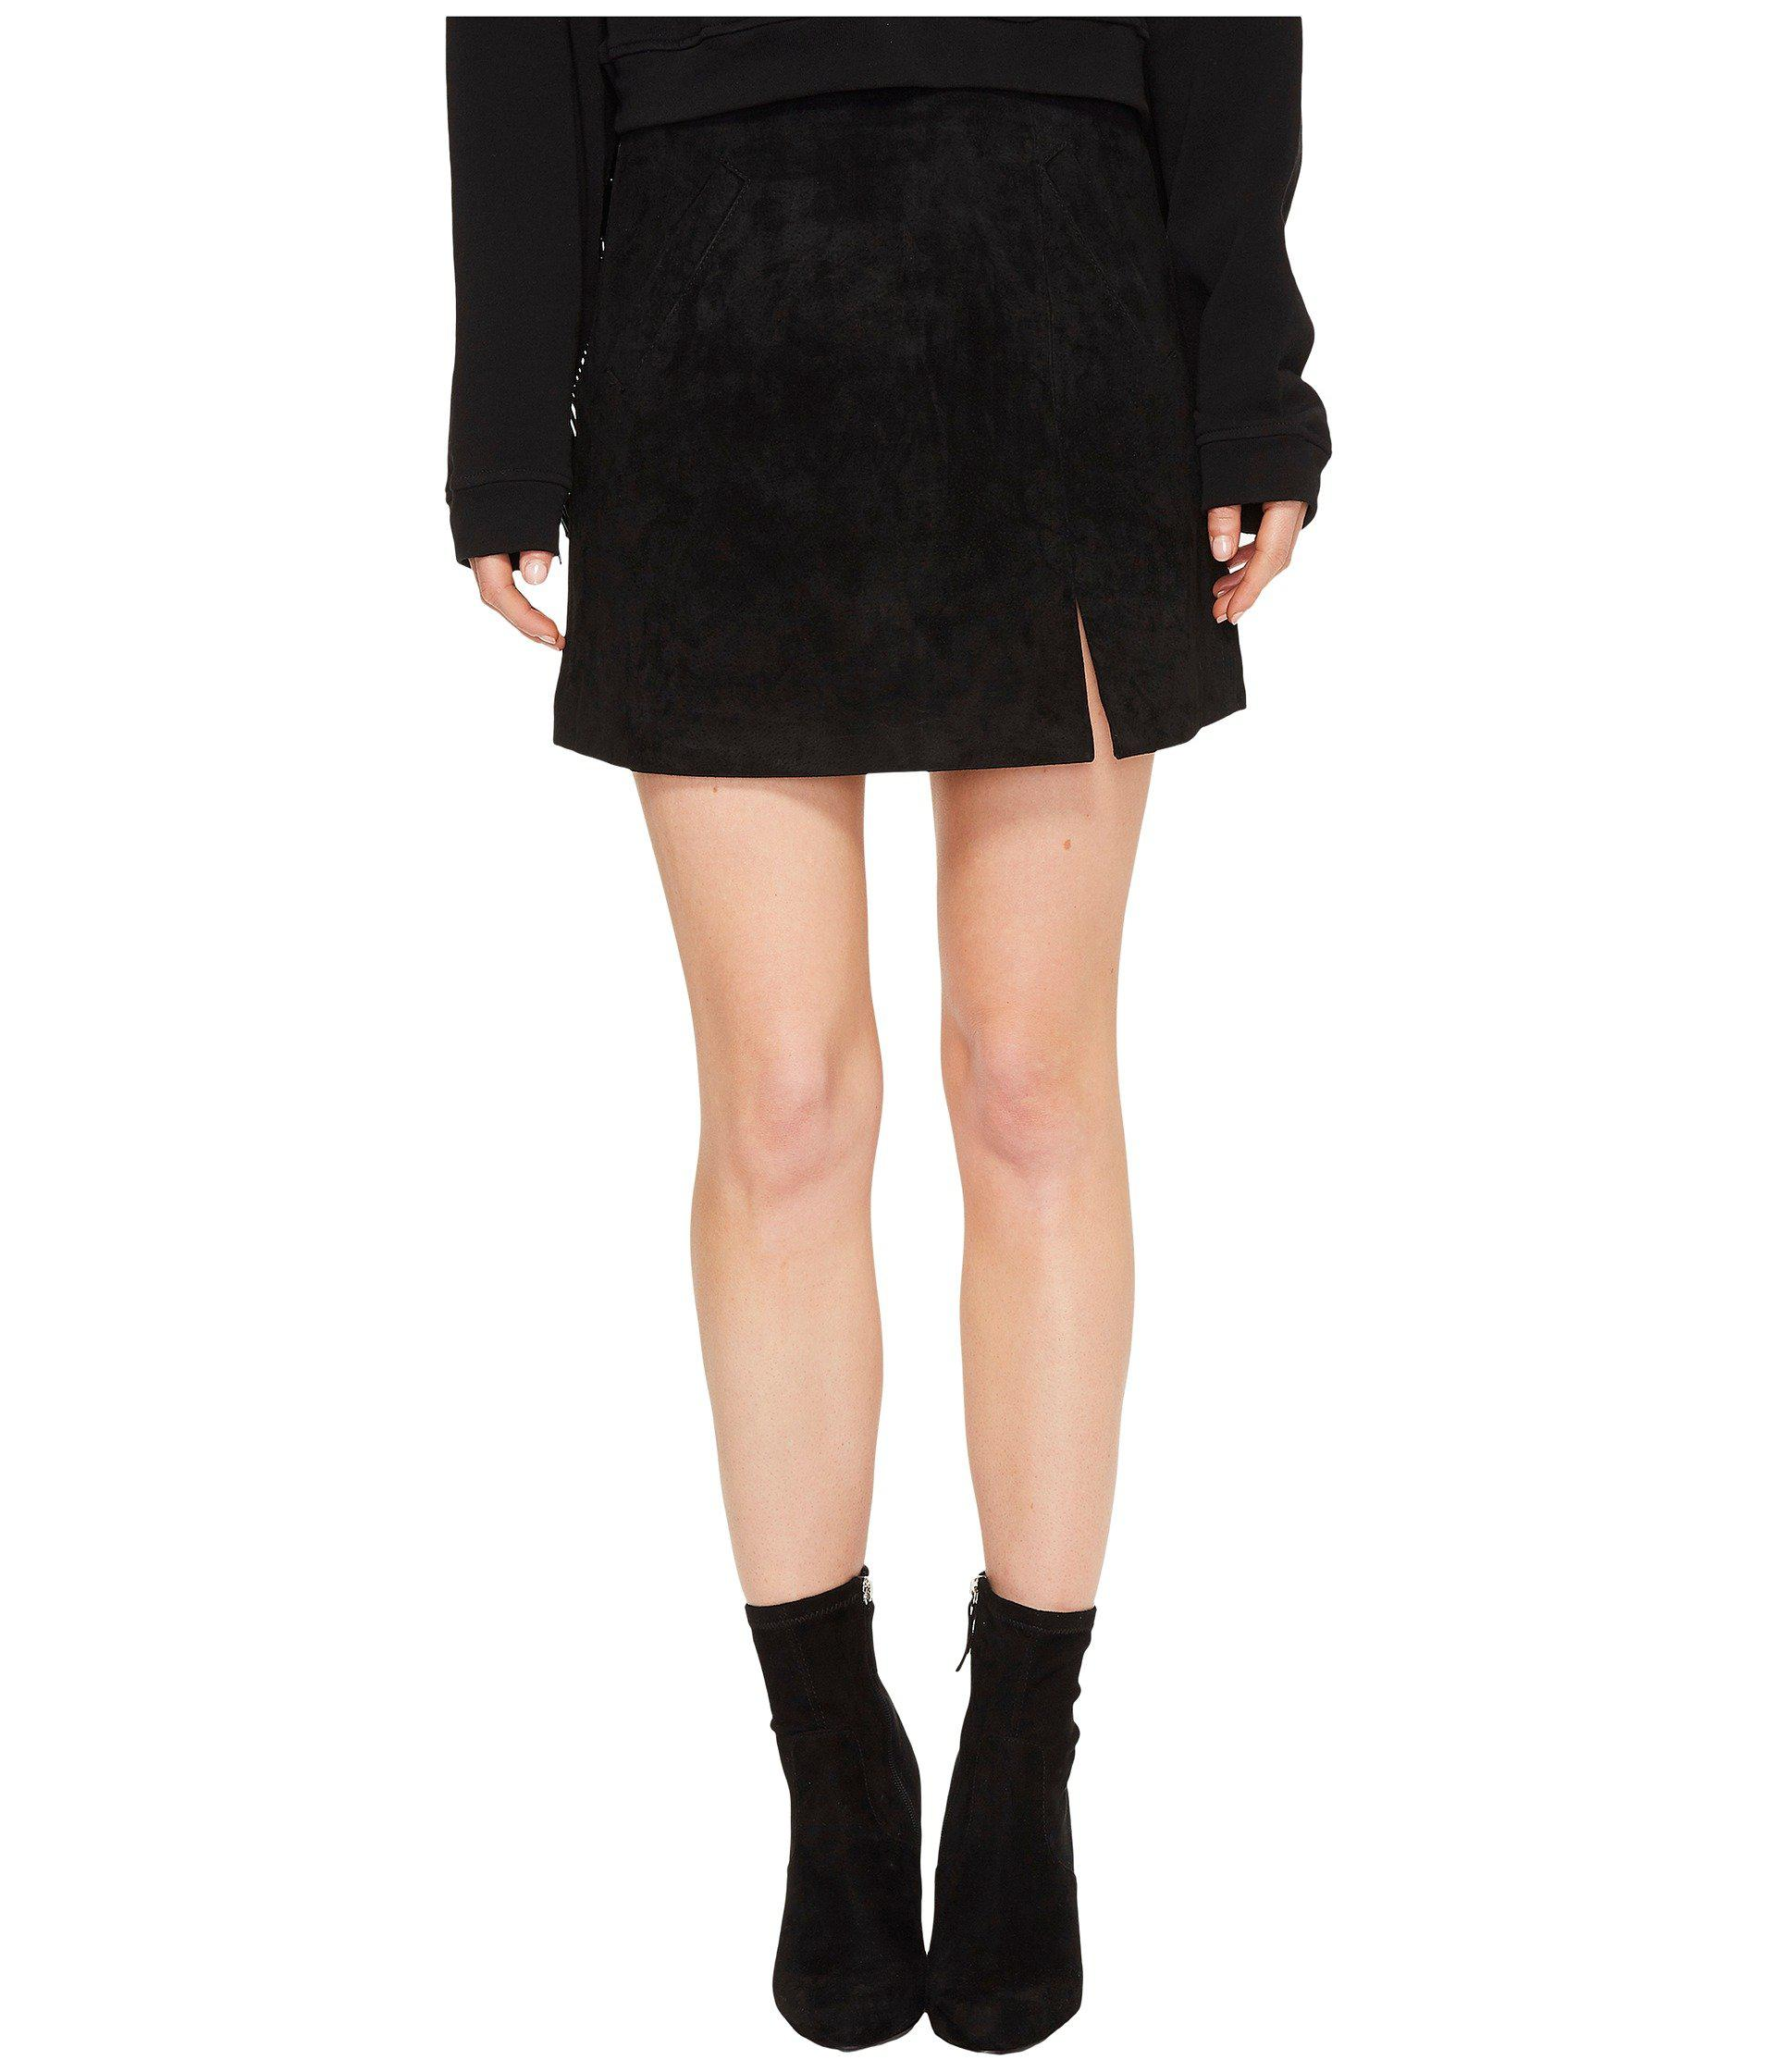 1978add95b Lyst - Blank NYC Suede Mini Skirt In Black/seal The Deal in Black ...